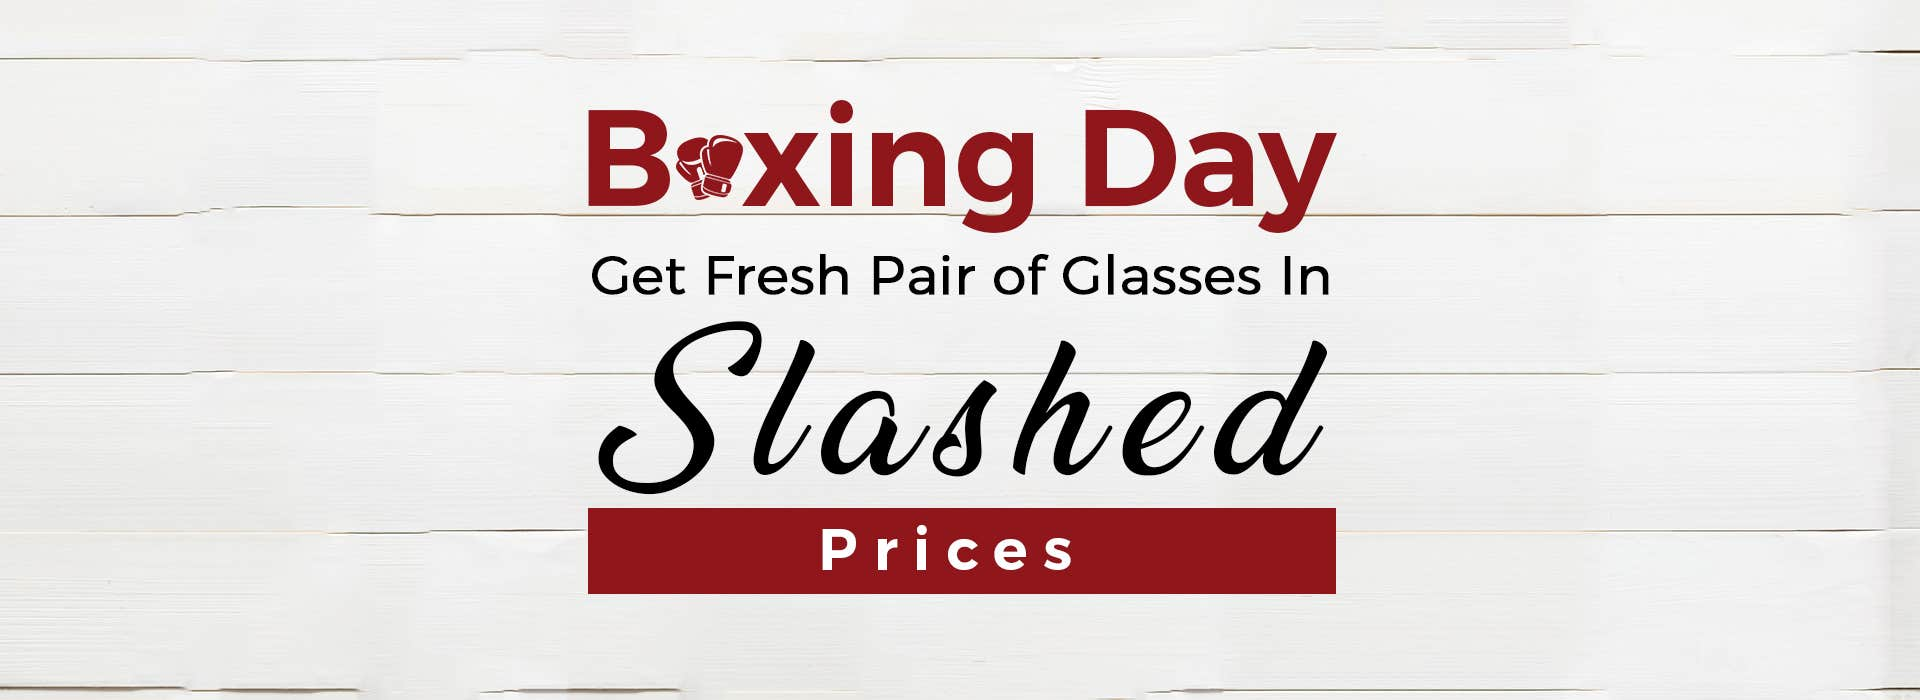 Boxing Day: Get Fresh Pair of Glasses In Slashed Prices